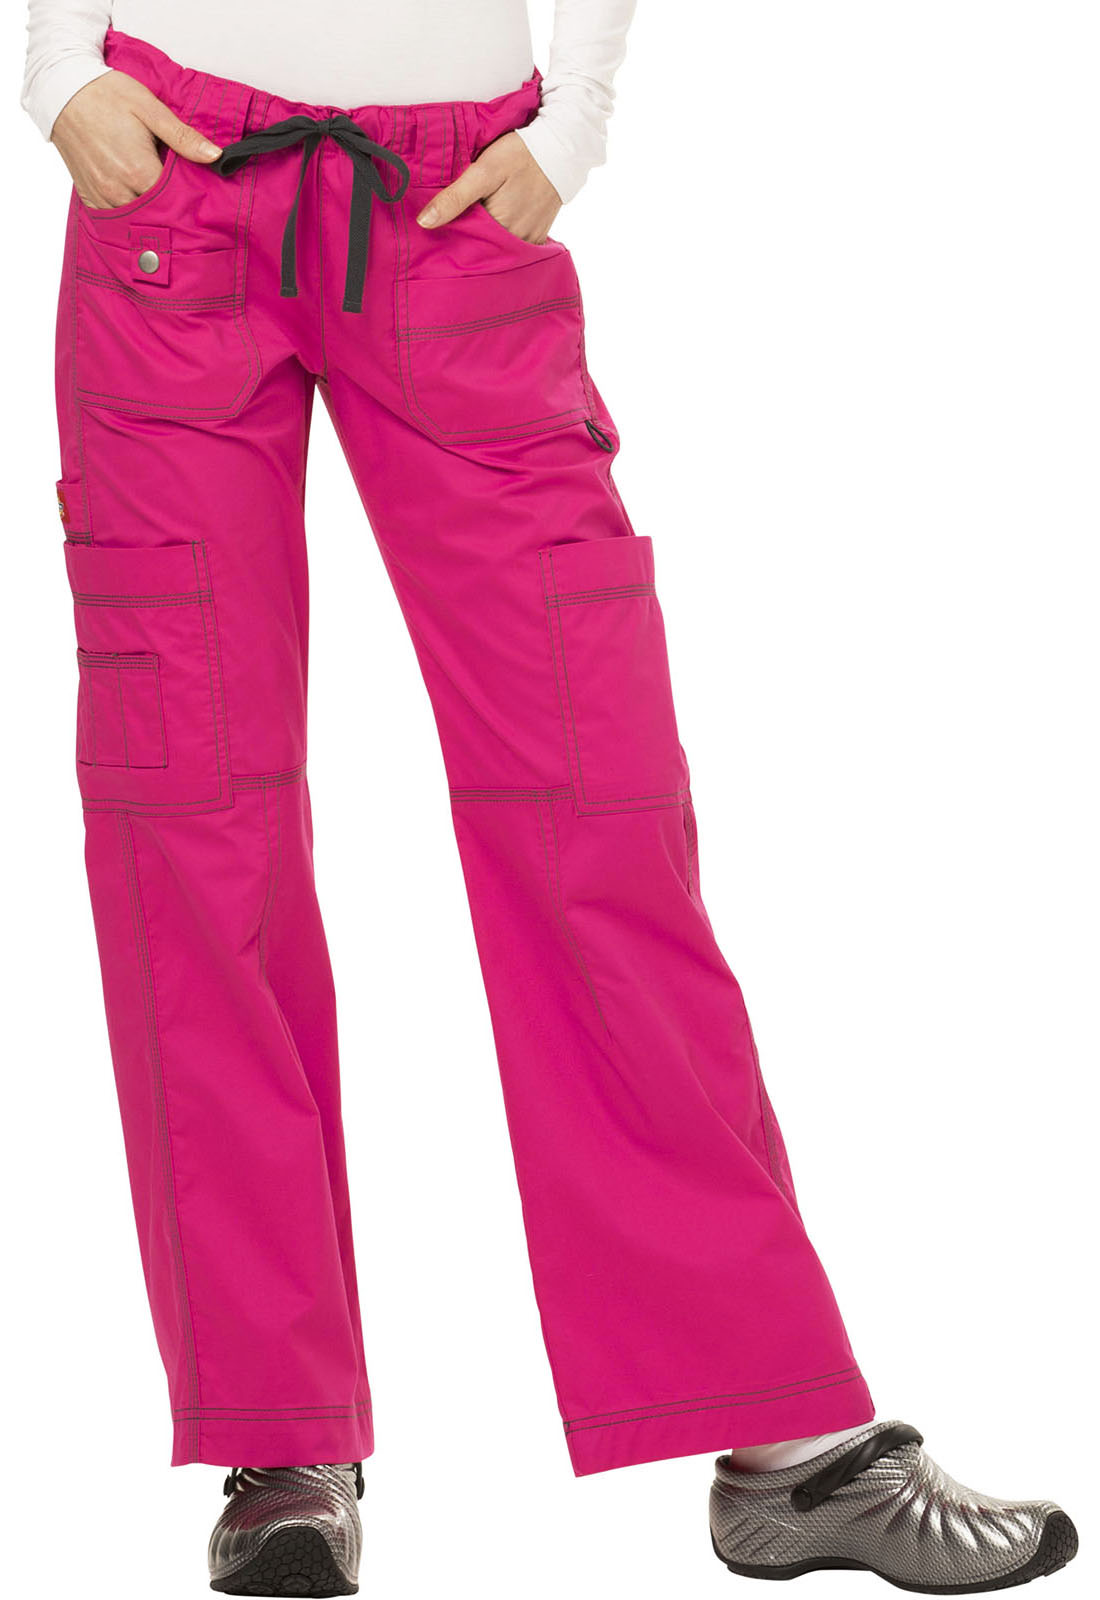 4bebc0ad77a Gen Flex Low Rise Drawstring Cargo Pant in Hot Pink 857455T-HPKZ ...